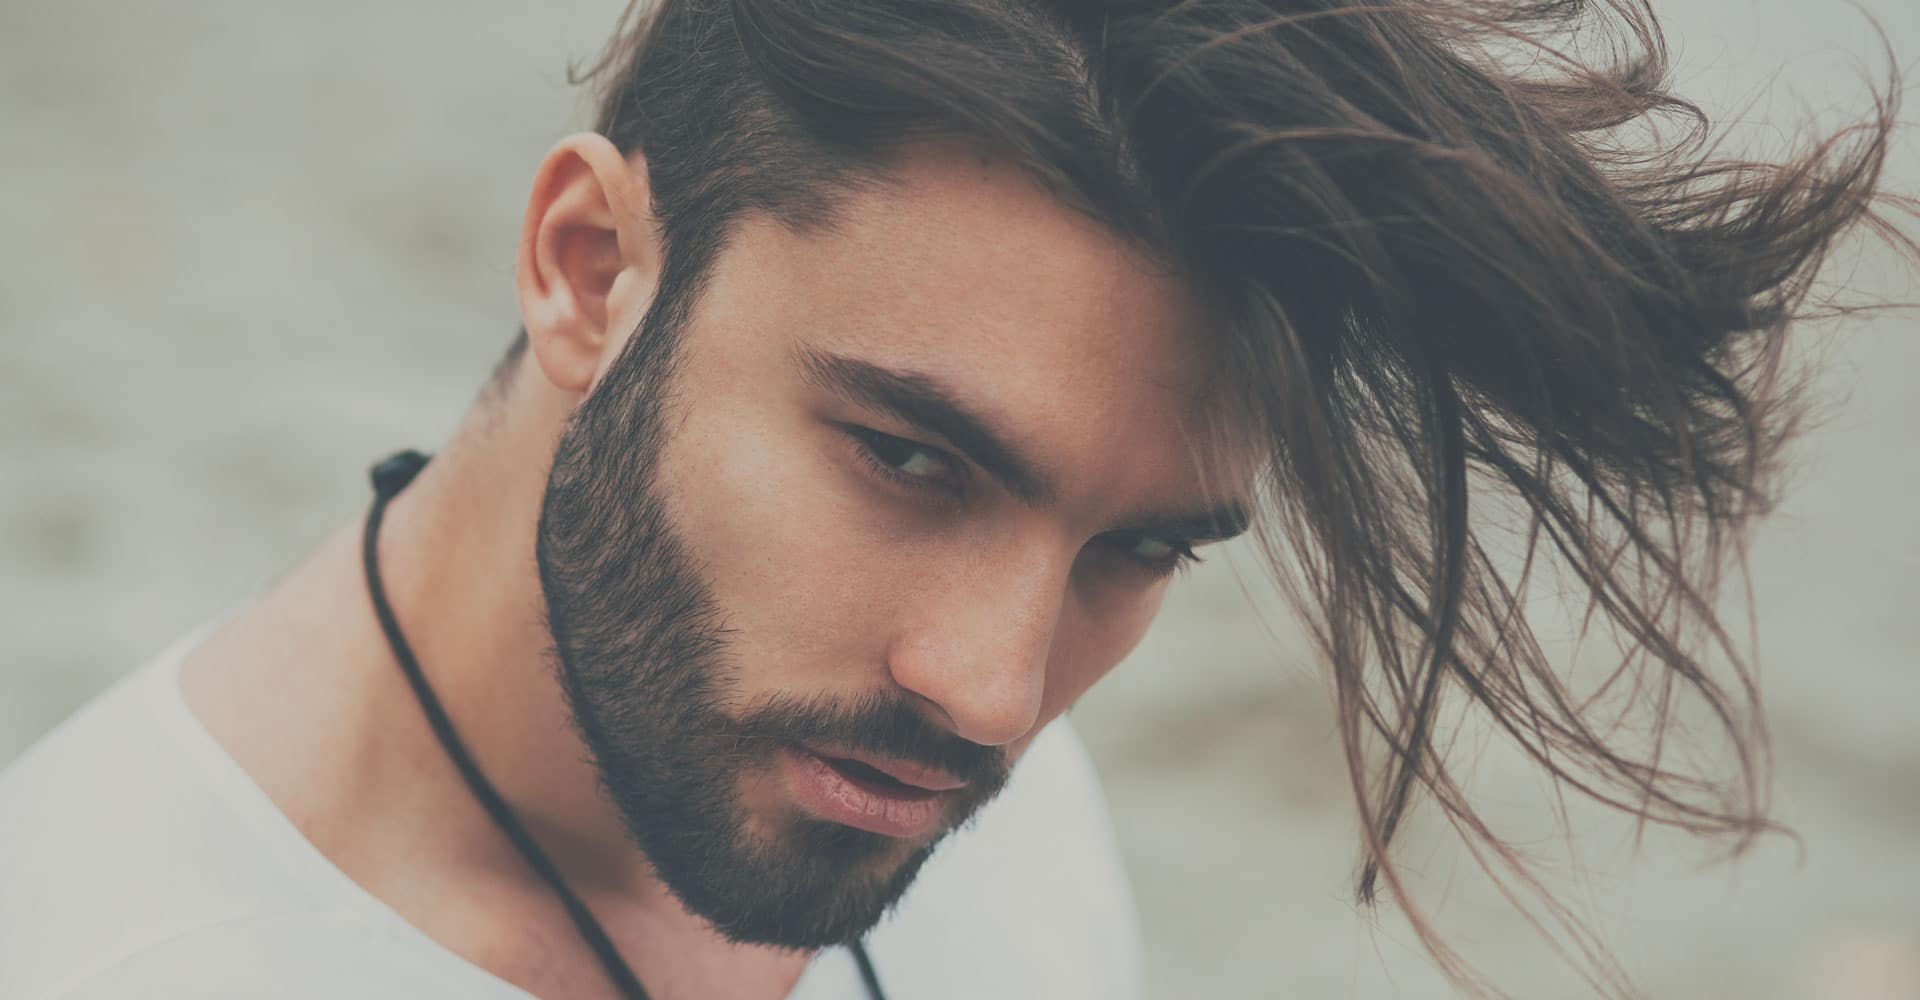 What Should You Pay Attention to With a Hair Transplant in the Winter - Zty Hair Transplant Turkey